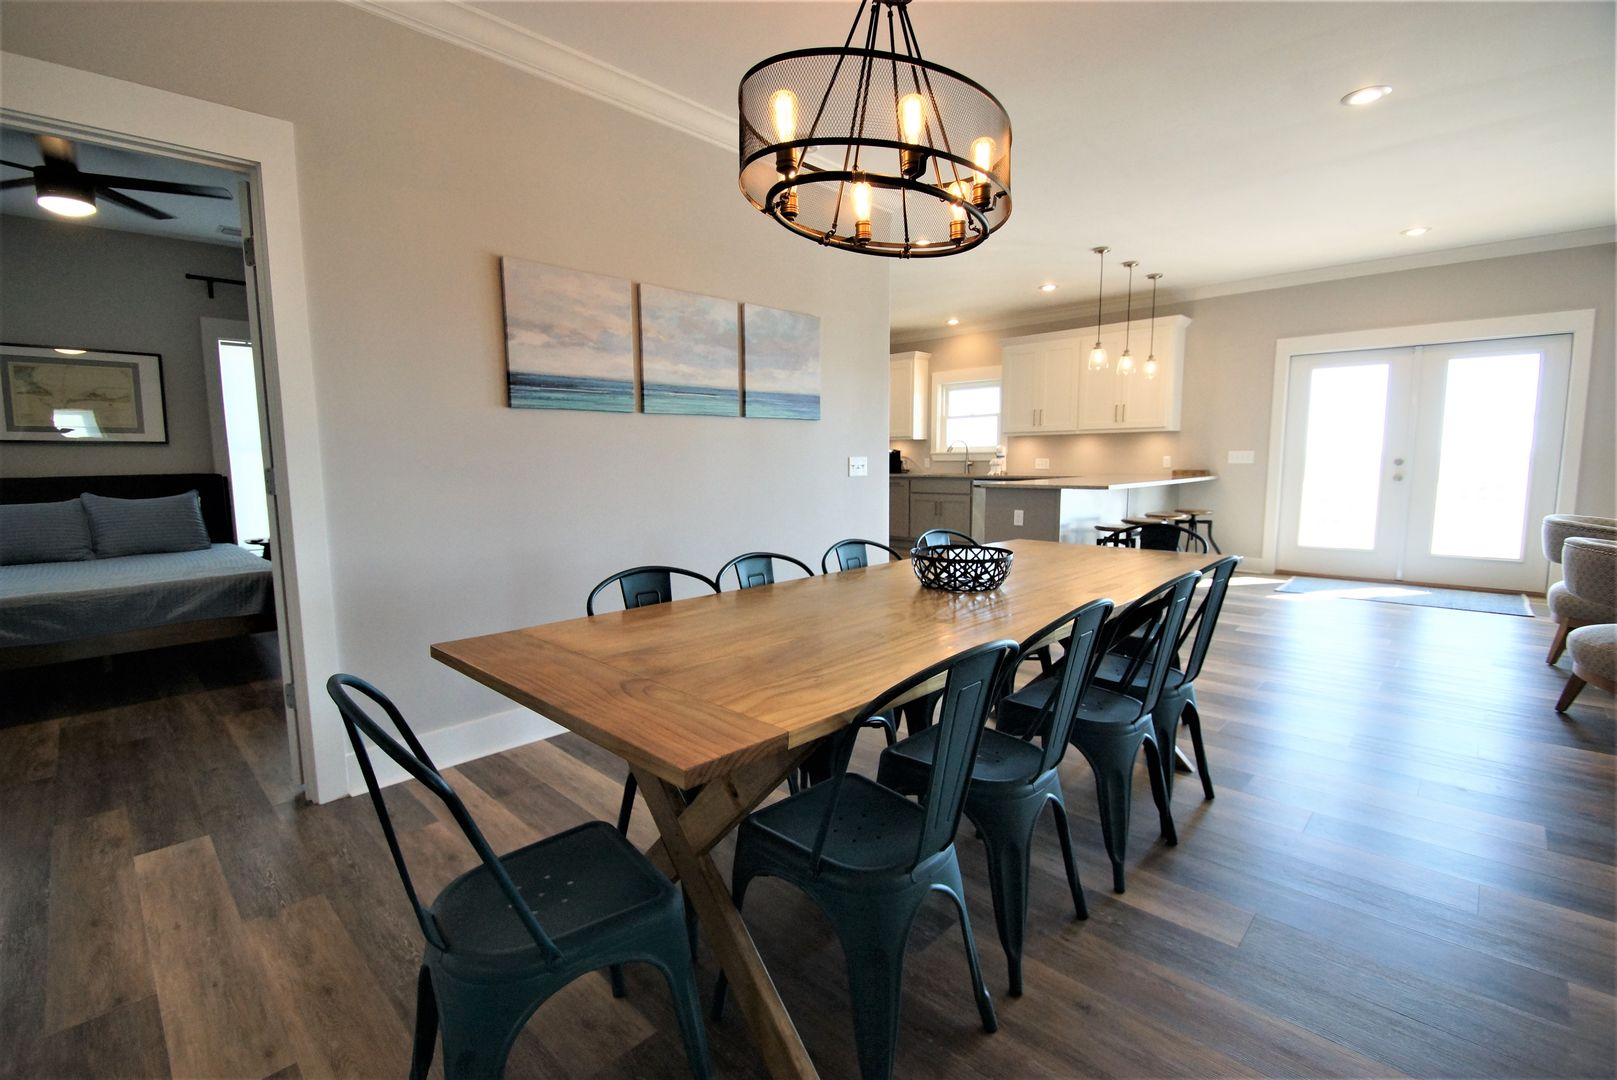 Beautiful dining area equipped to seat 10 along with a large table.